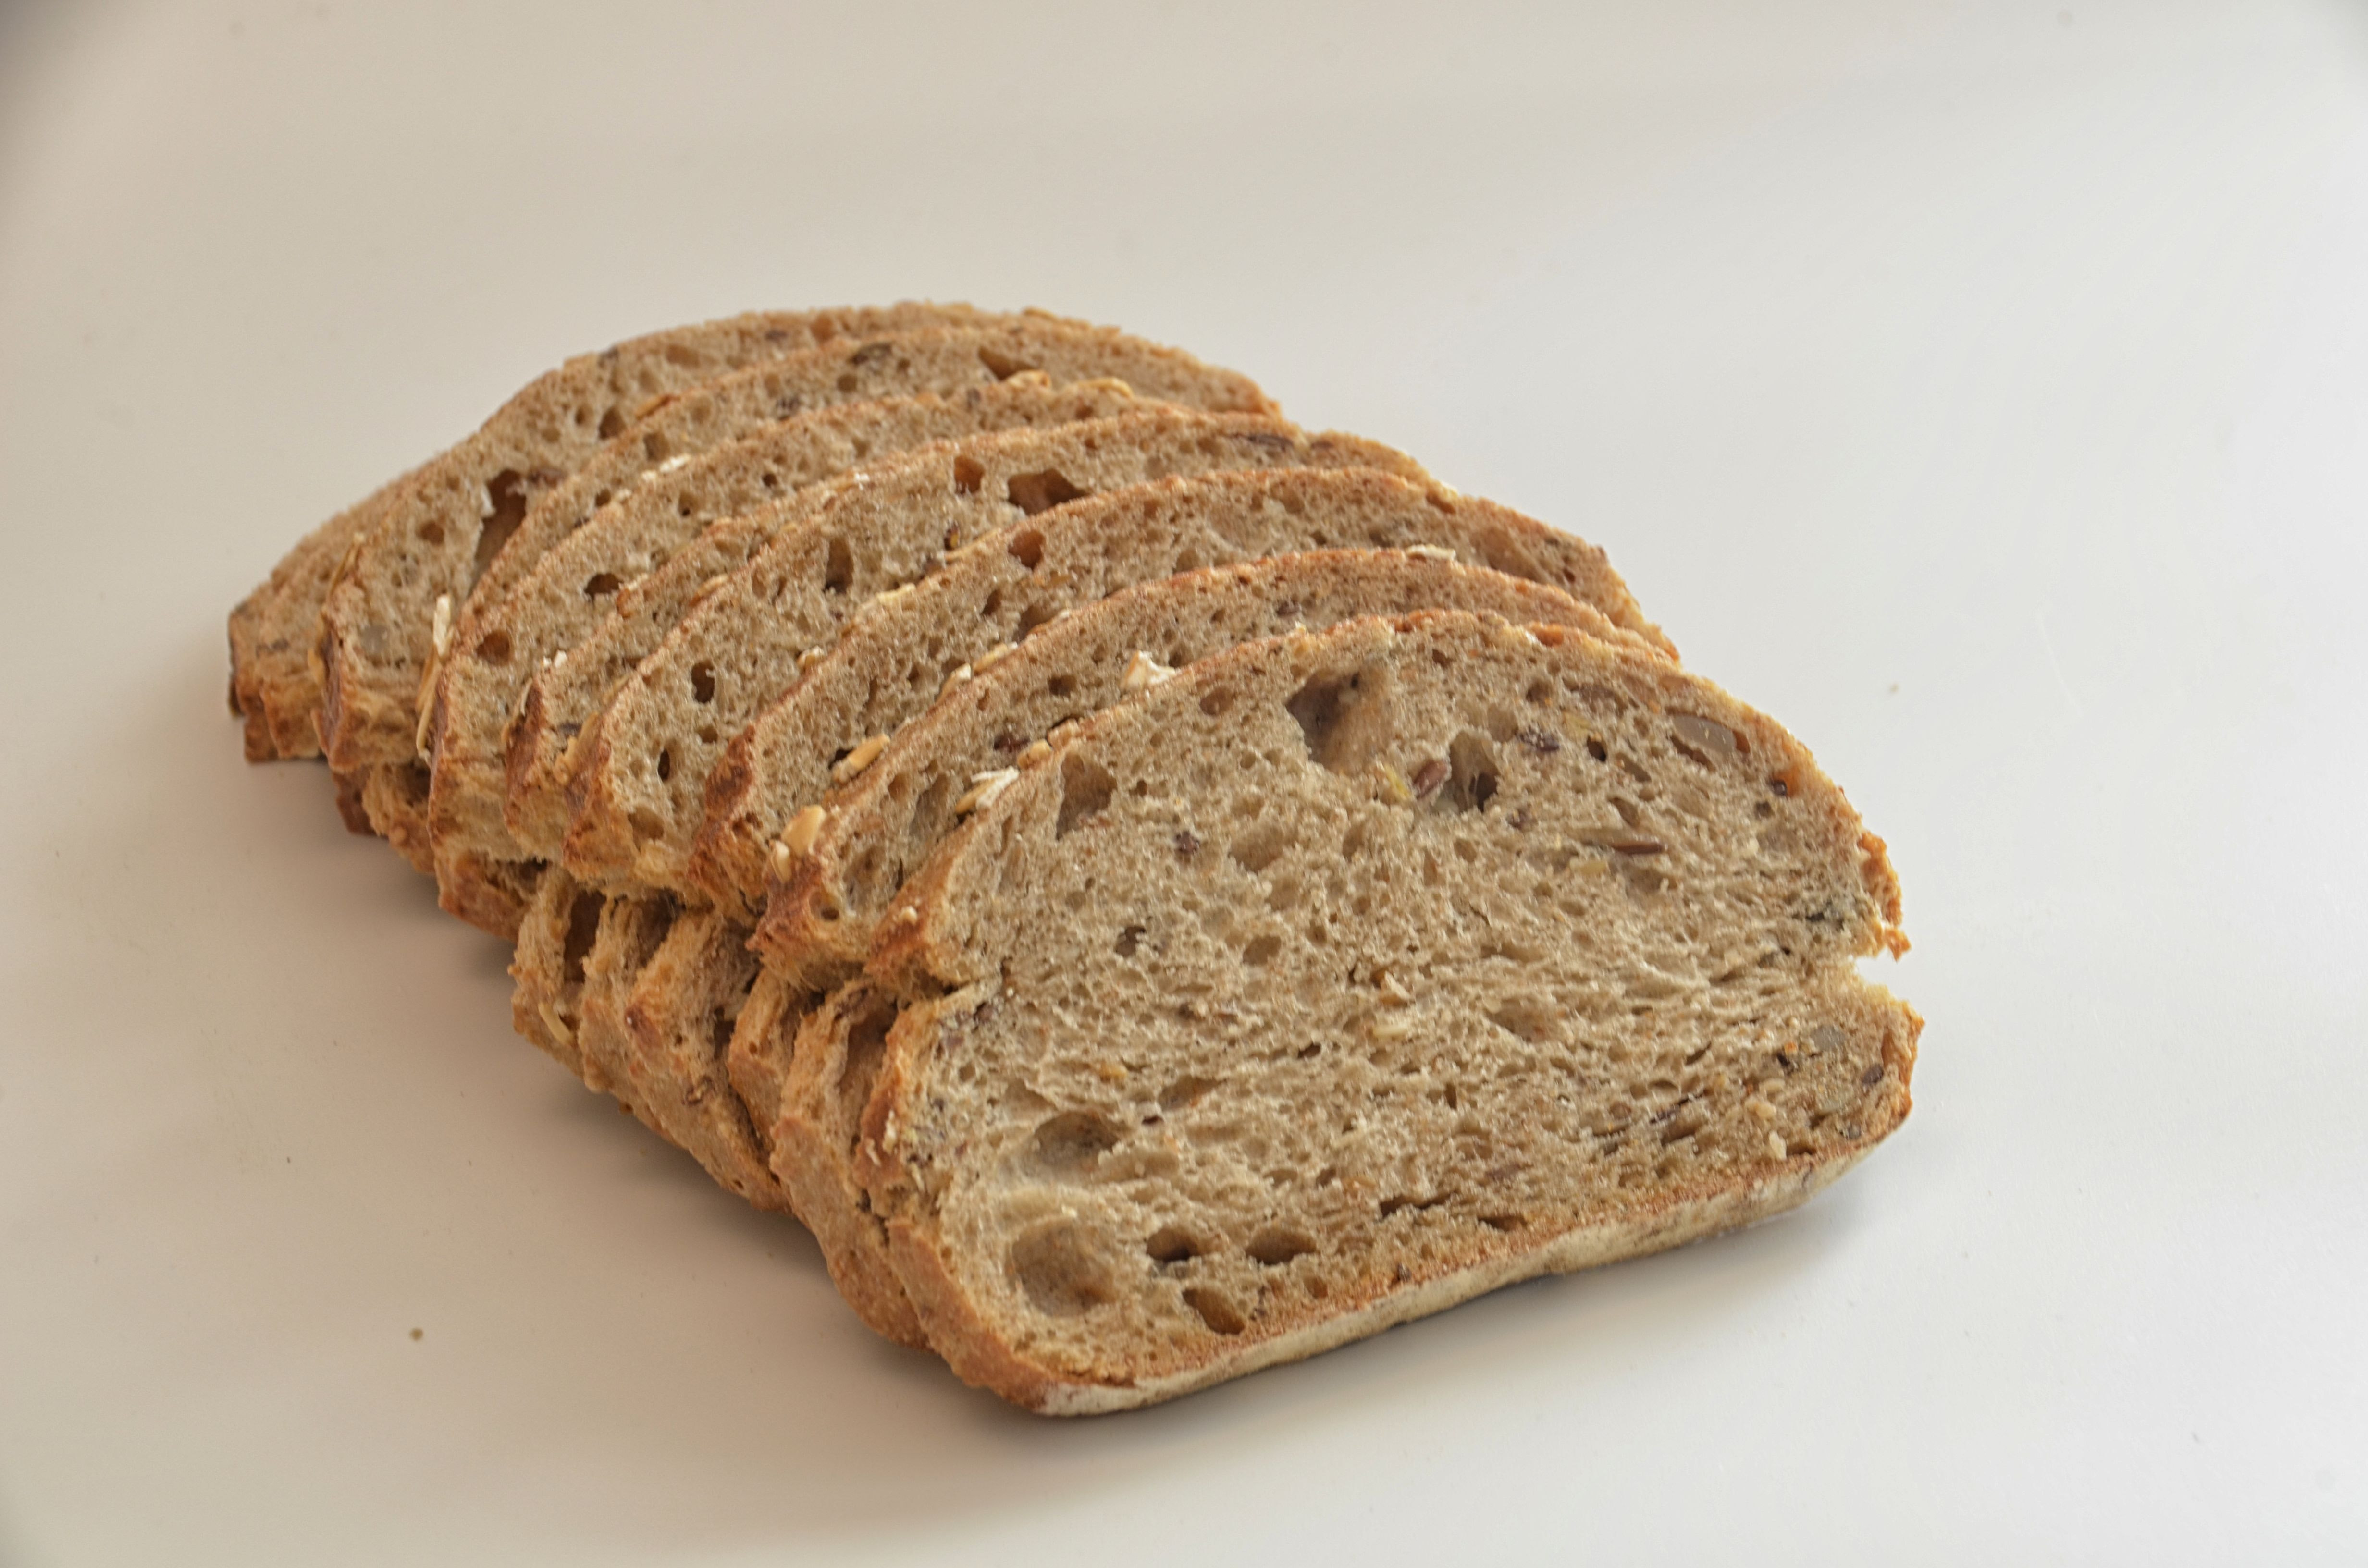 Baking Healthy Bread  Several Brown Breads · Free Stock